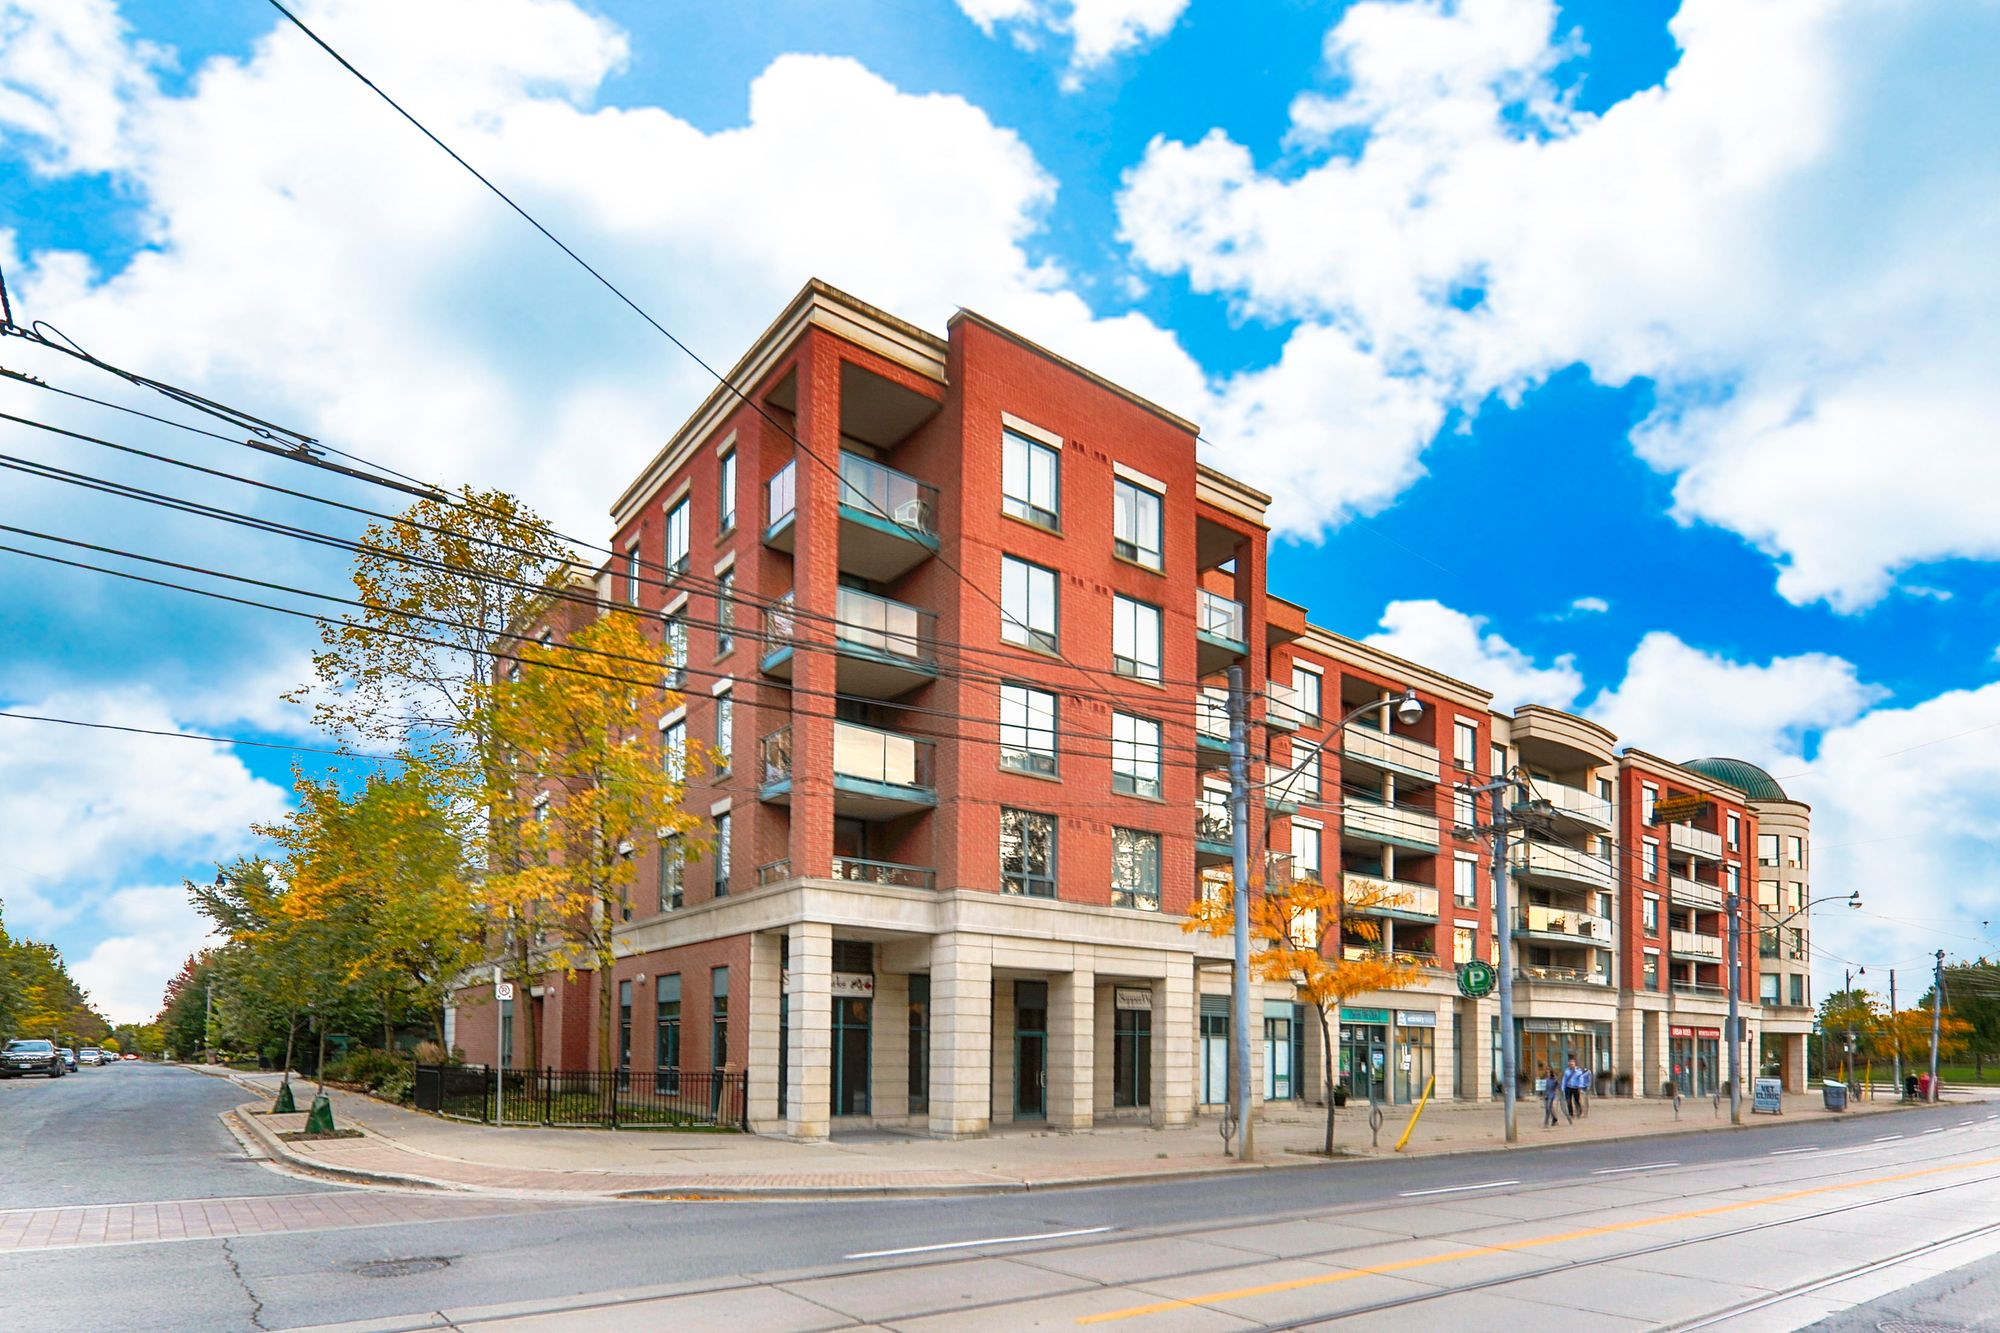 The Beach Condominiums IV at 1733 Queen St E. This condo is located in  East End, Toronto - image #1 of 5 by Strata.ca